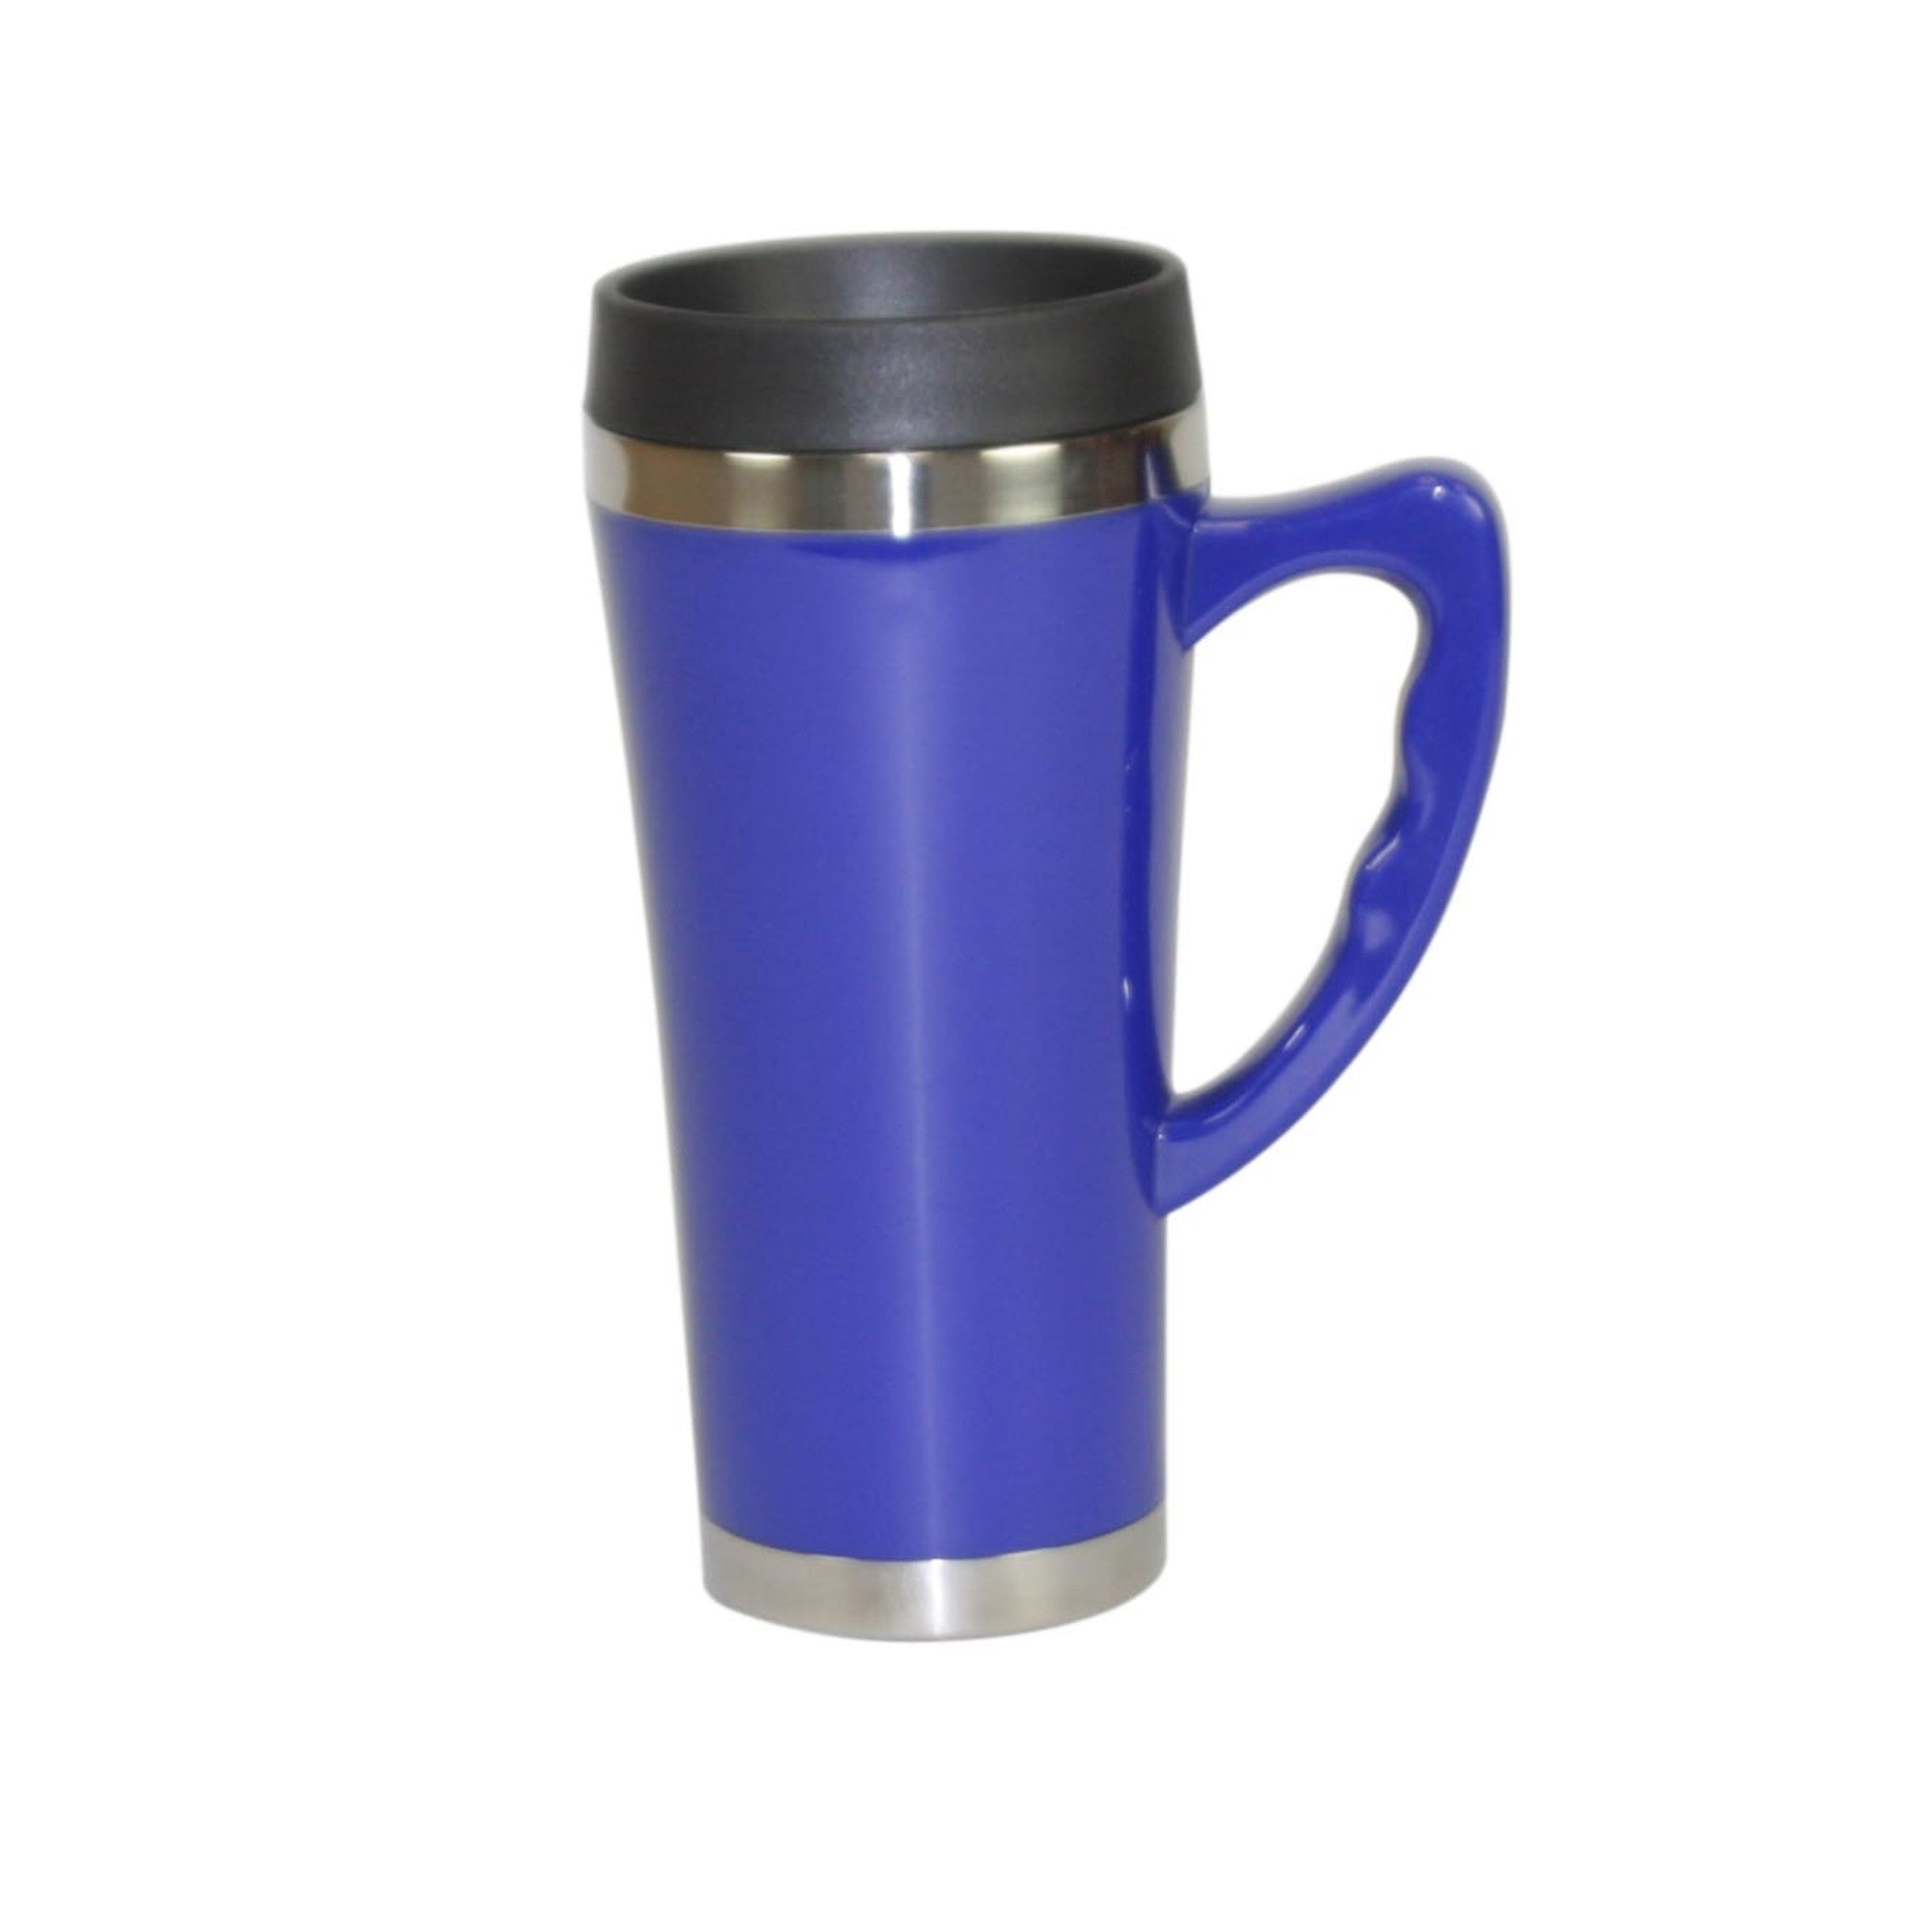 Home Basics Stainless Steel Travel Mug with Handle - Blue